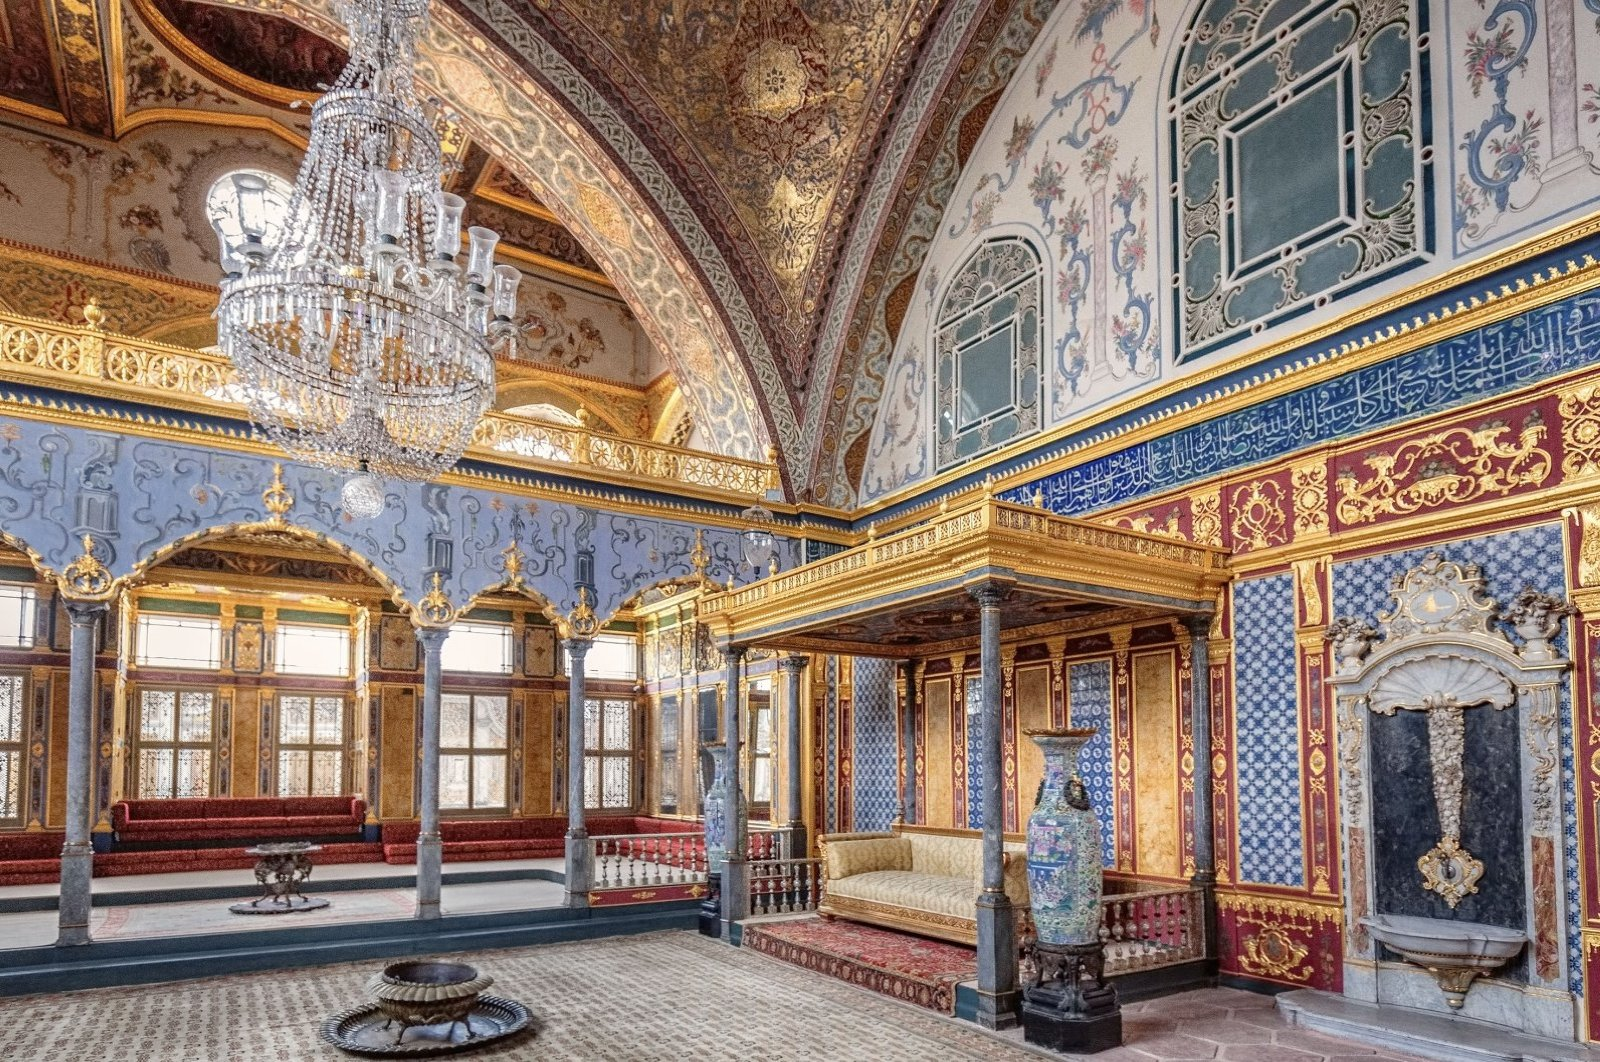 Topkapı Palace is one of the museums that will be open for visitors during the bayram holiday. (Ruslan Kaln / iStock Photo)